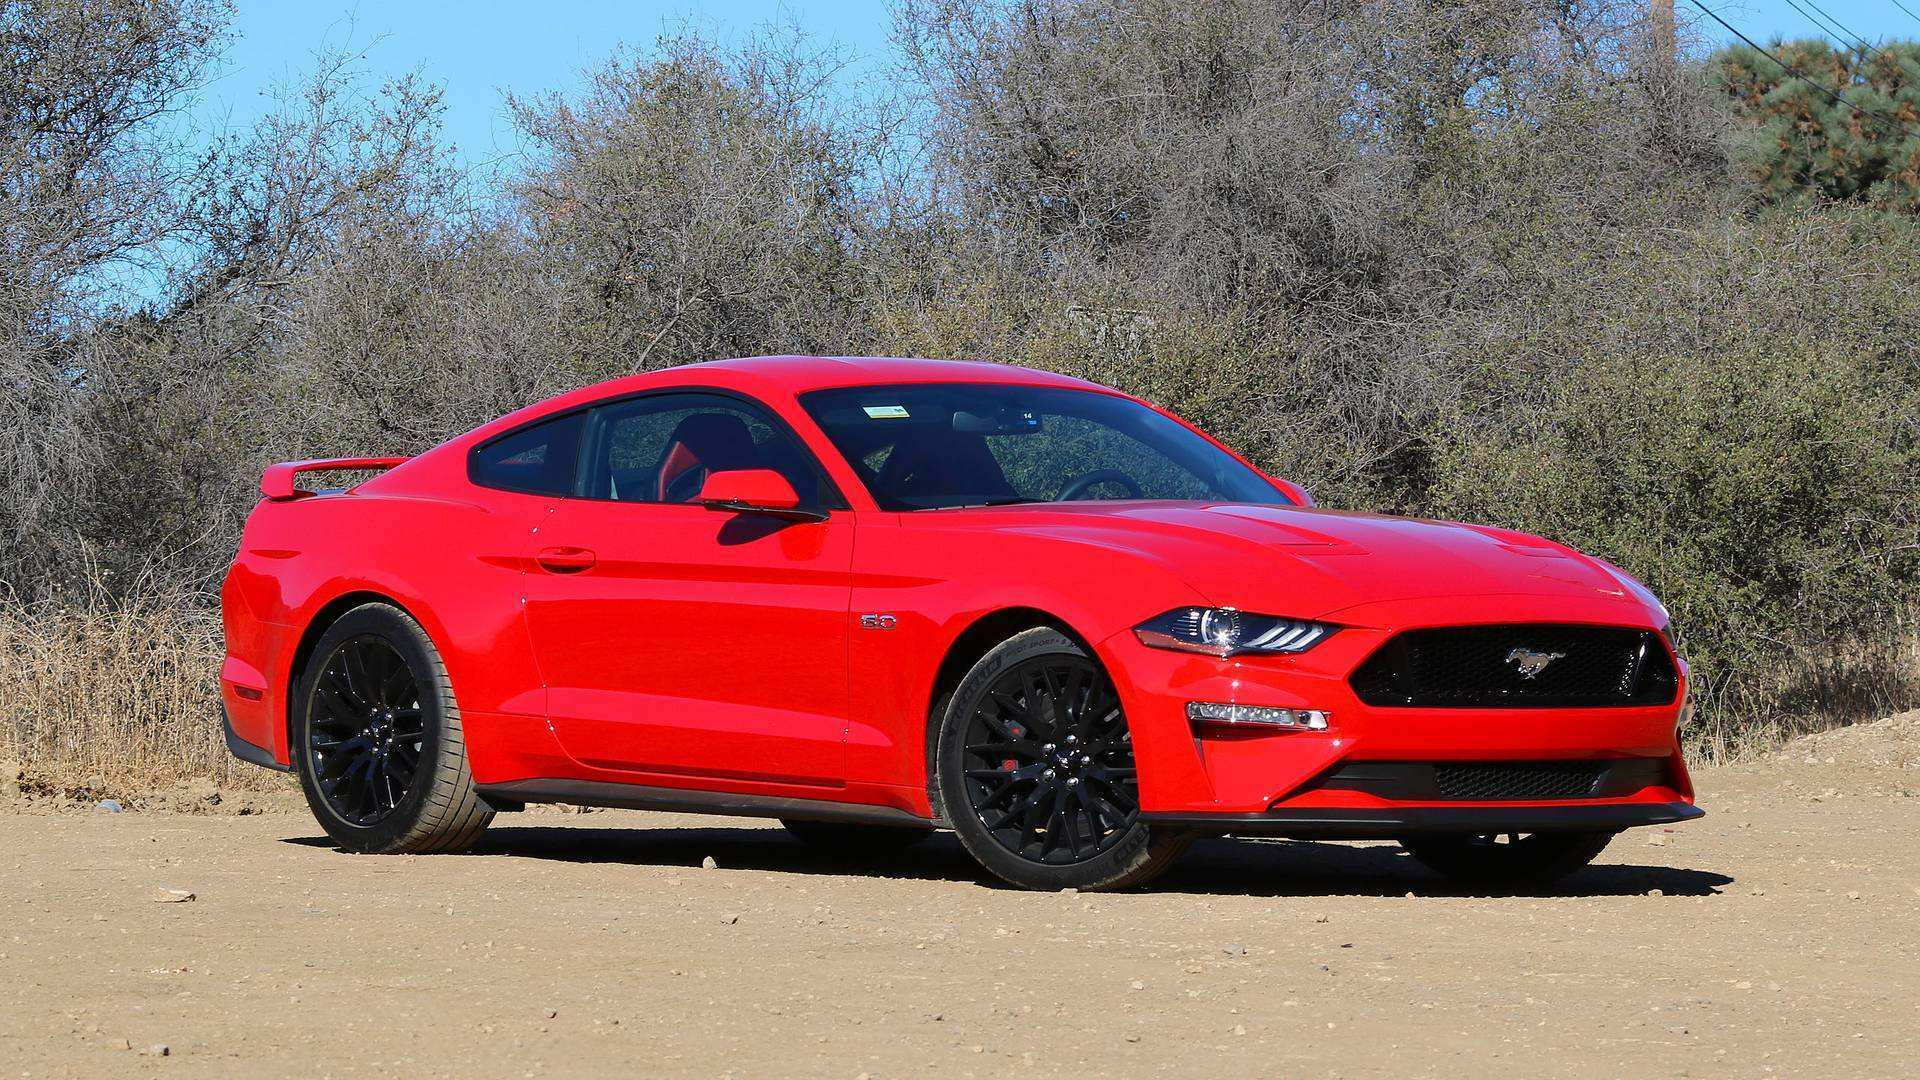 54 All New 2019 Mustang Mach New Concept